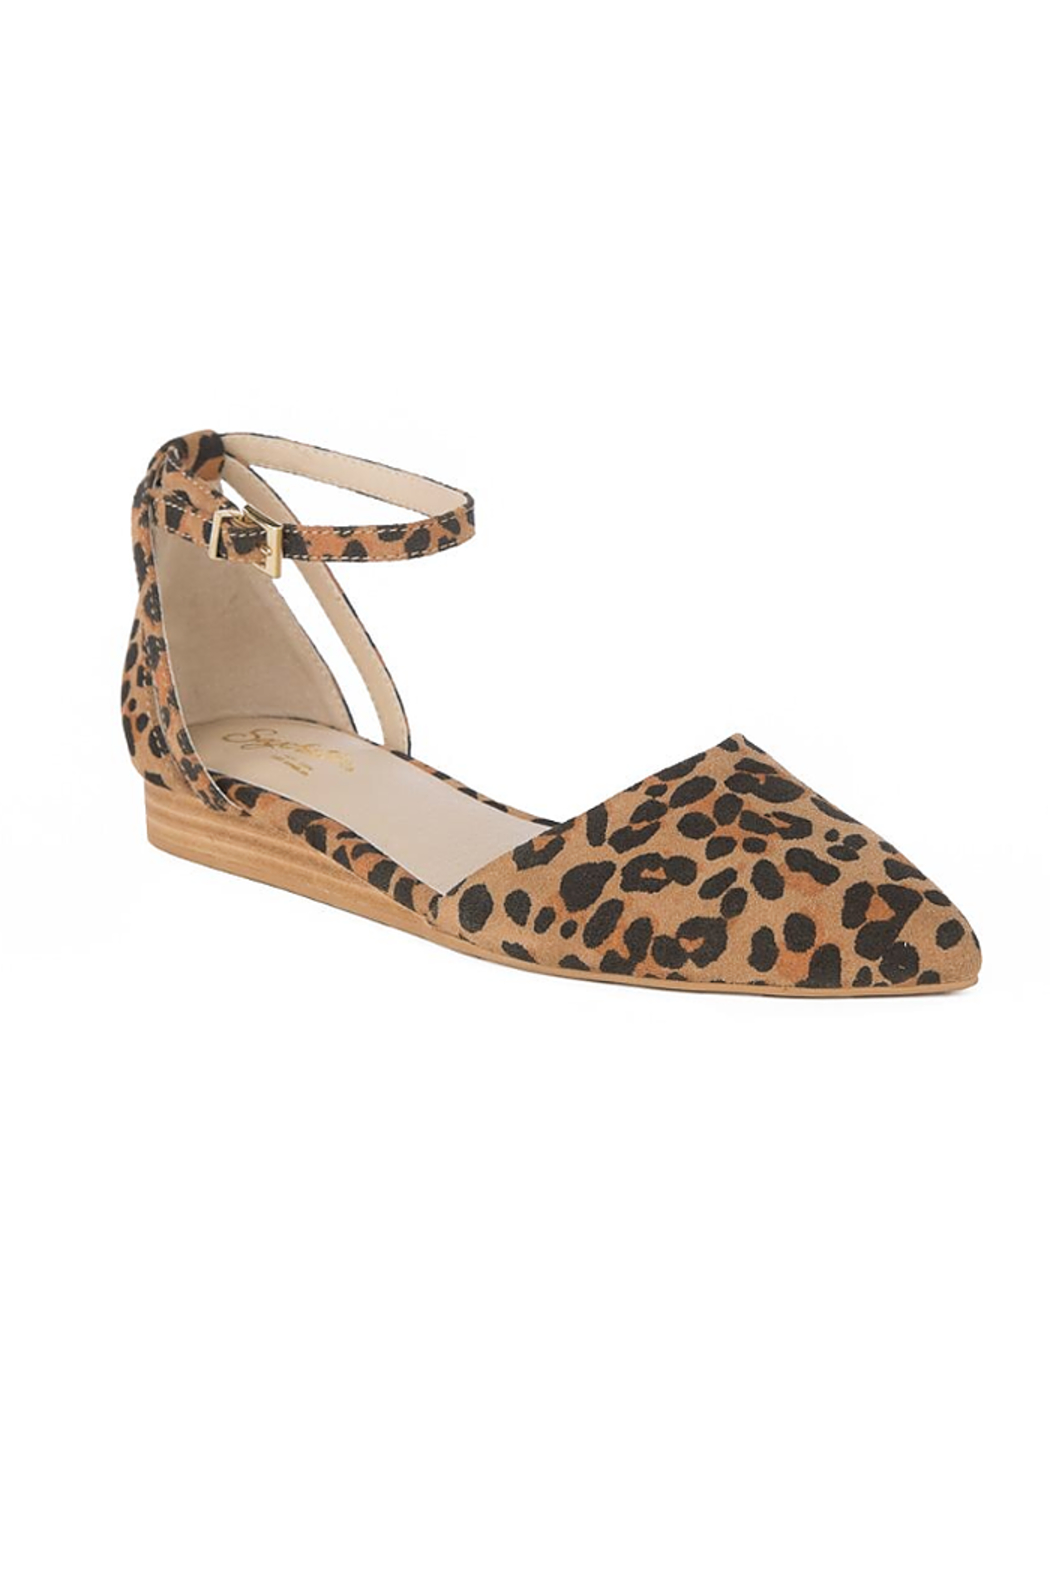 Seychelles Shoes Plateau Leopard Suede Wedge - Front Full Image